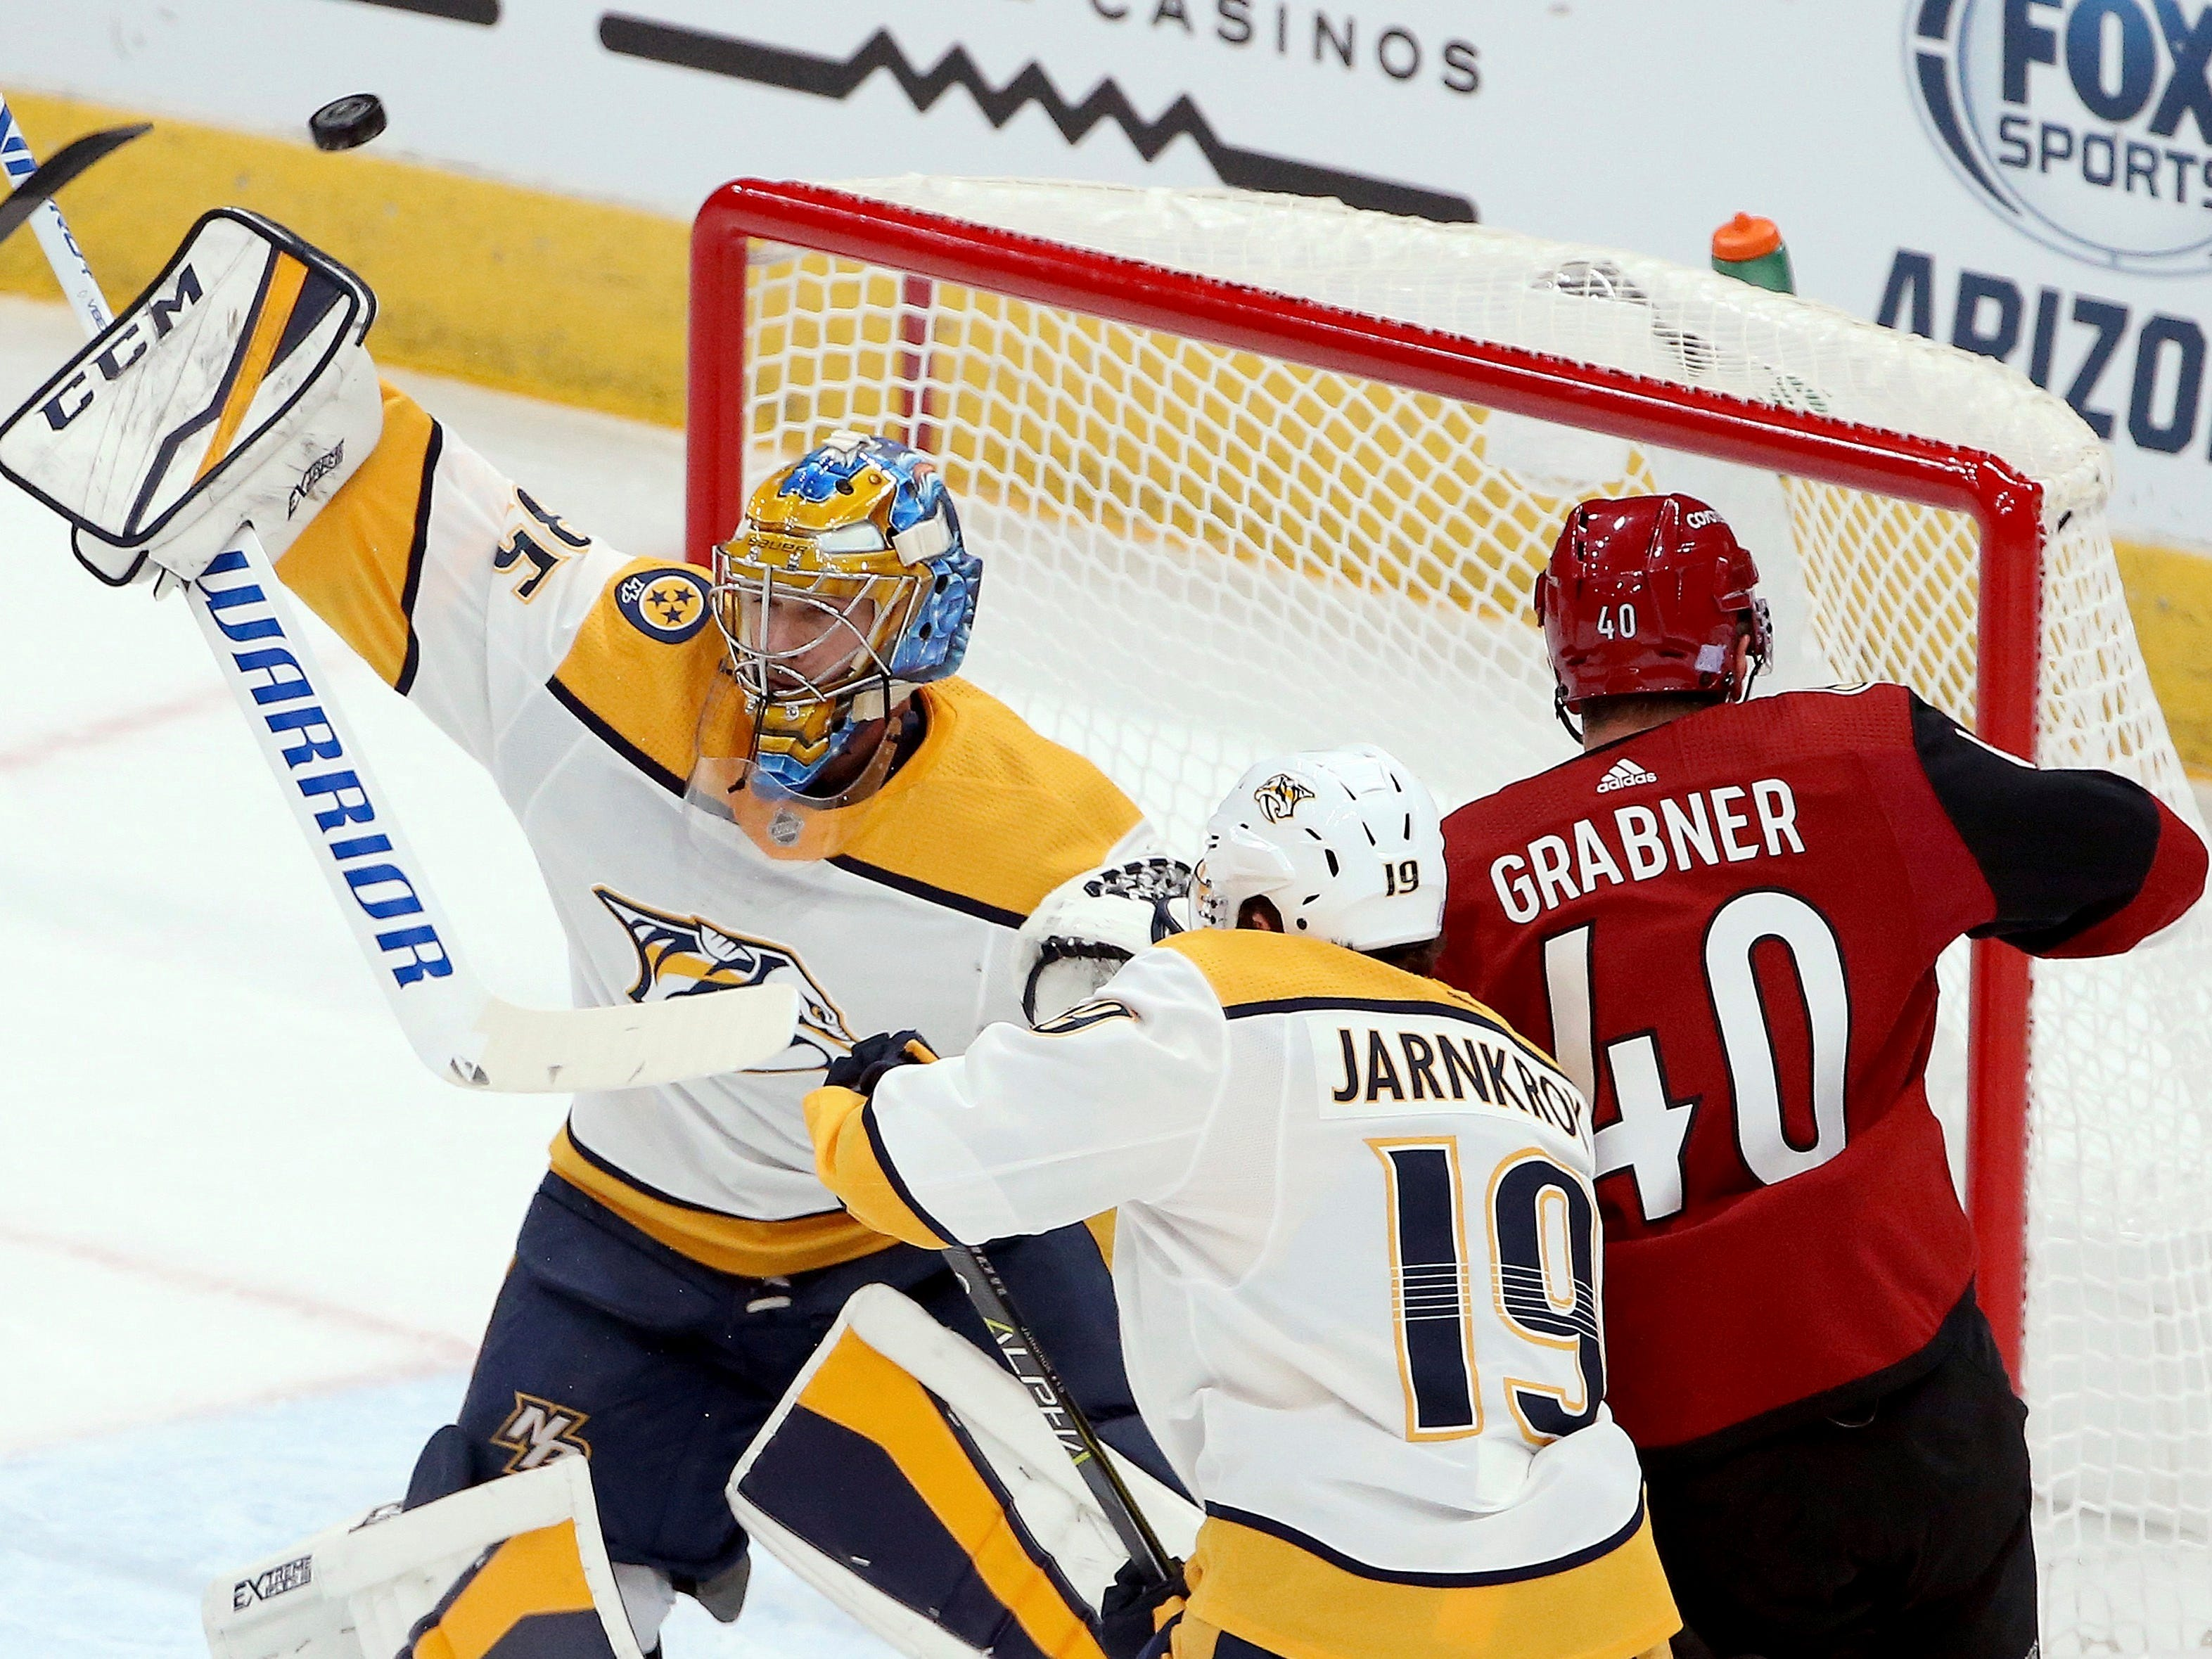 Nashville Predators goaltender Pekka Rinne, left, makes a save on a shot as Arizona Coyotes right wing Michael Grabner (40) battles with Predators center Calle Jarnkrok (19) during the first period of an NHL hockey game Thursday, Nov. 15, 2018, in Glendale, Ariz. (AP Photo/Ross D. Franklin)